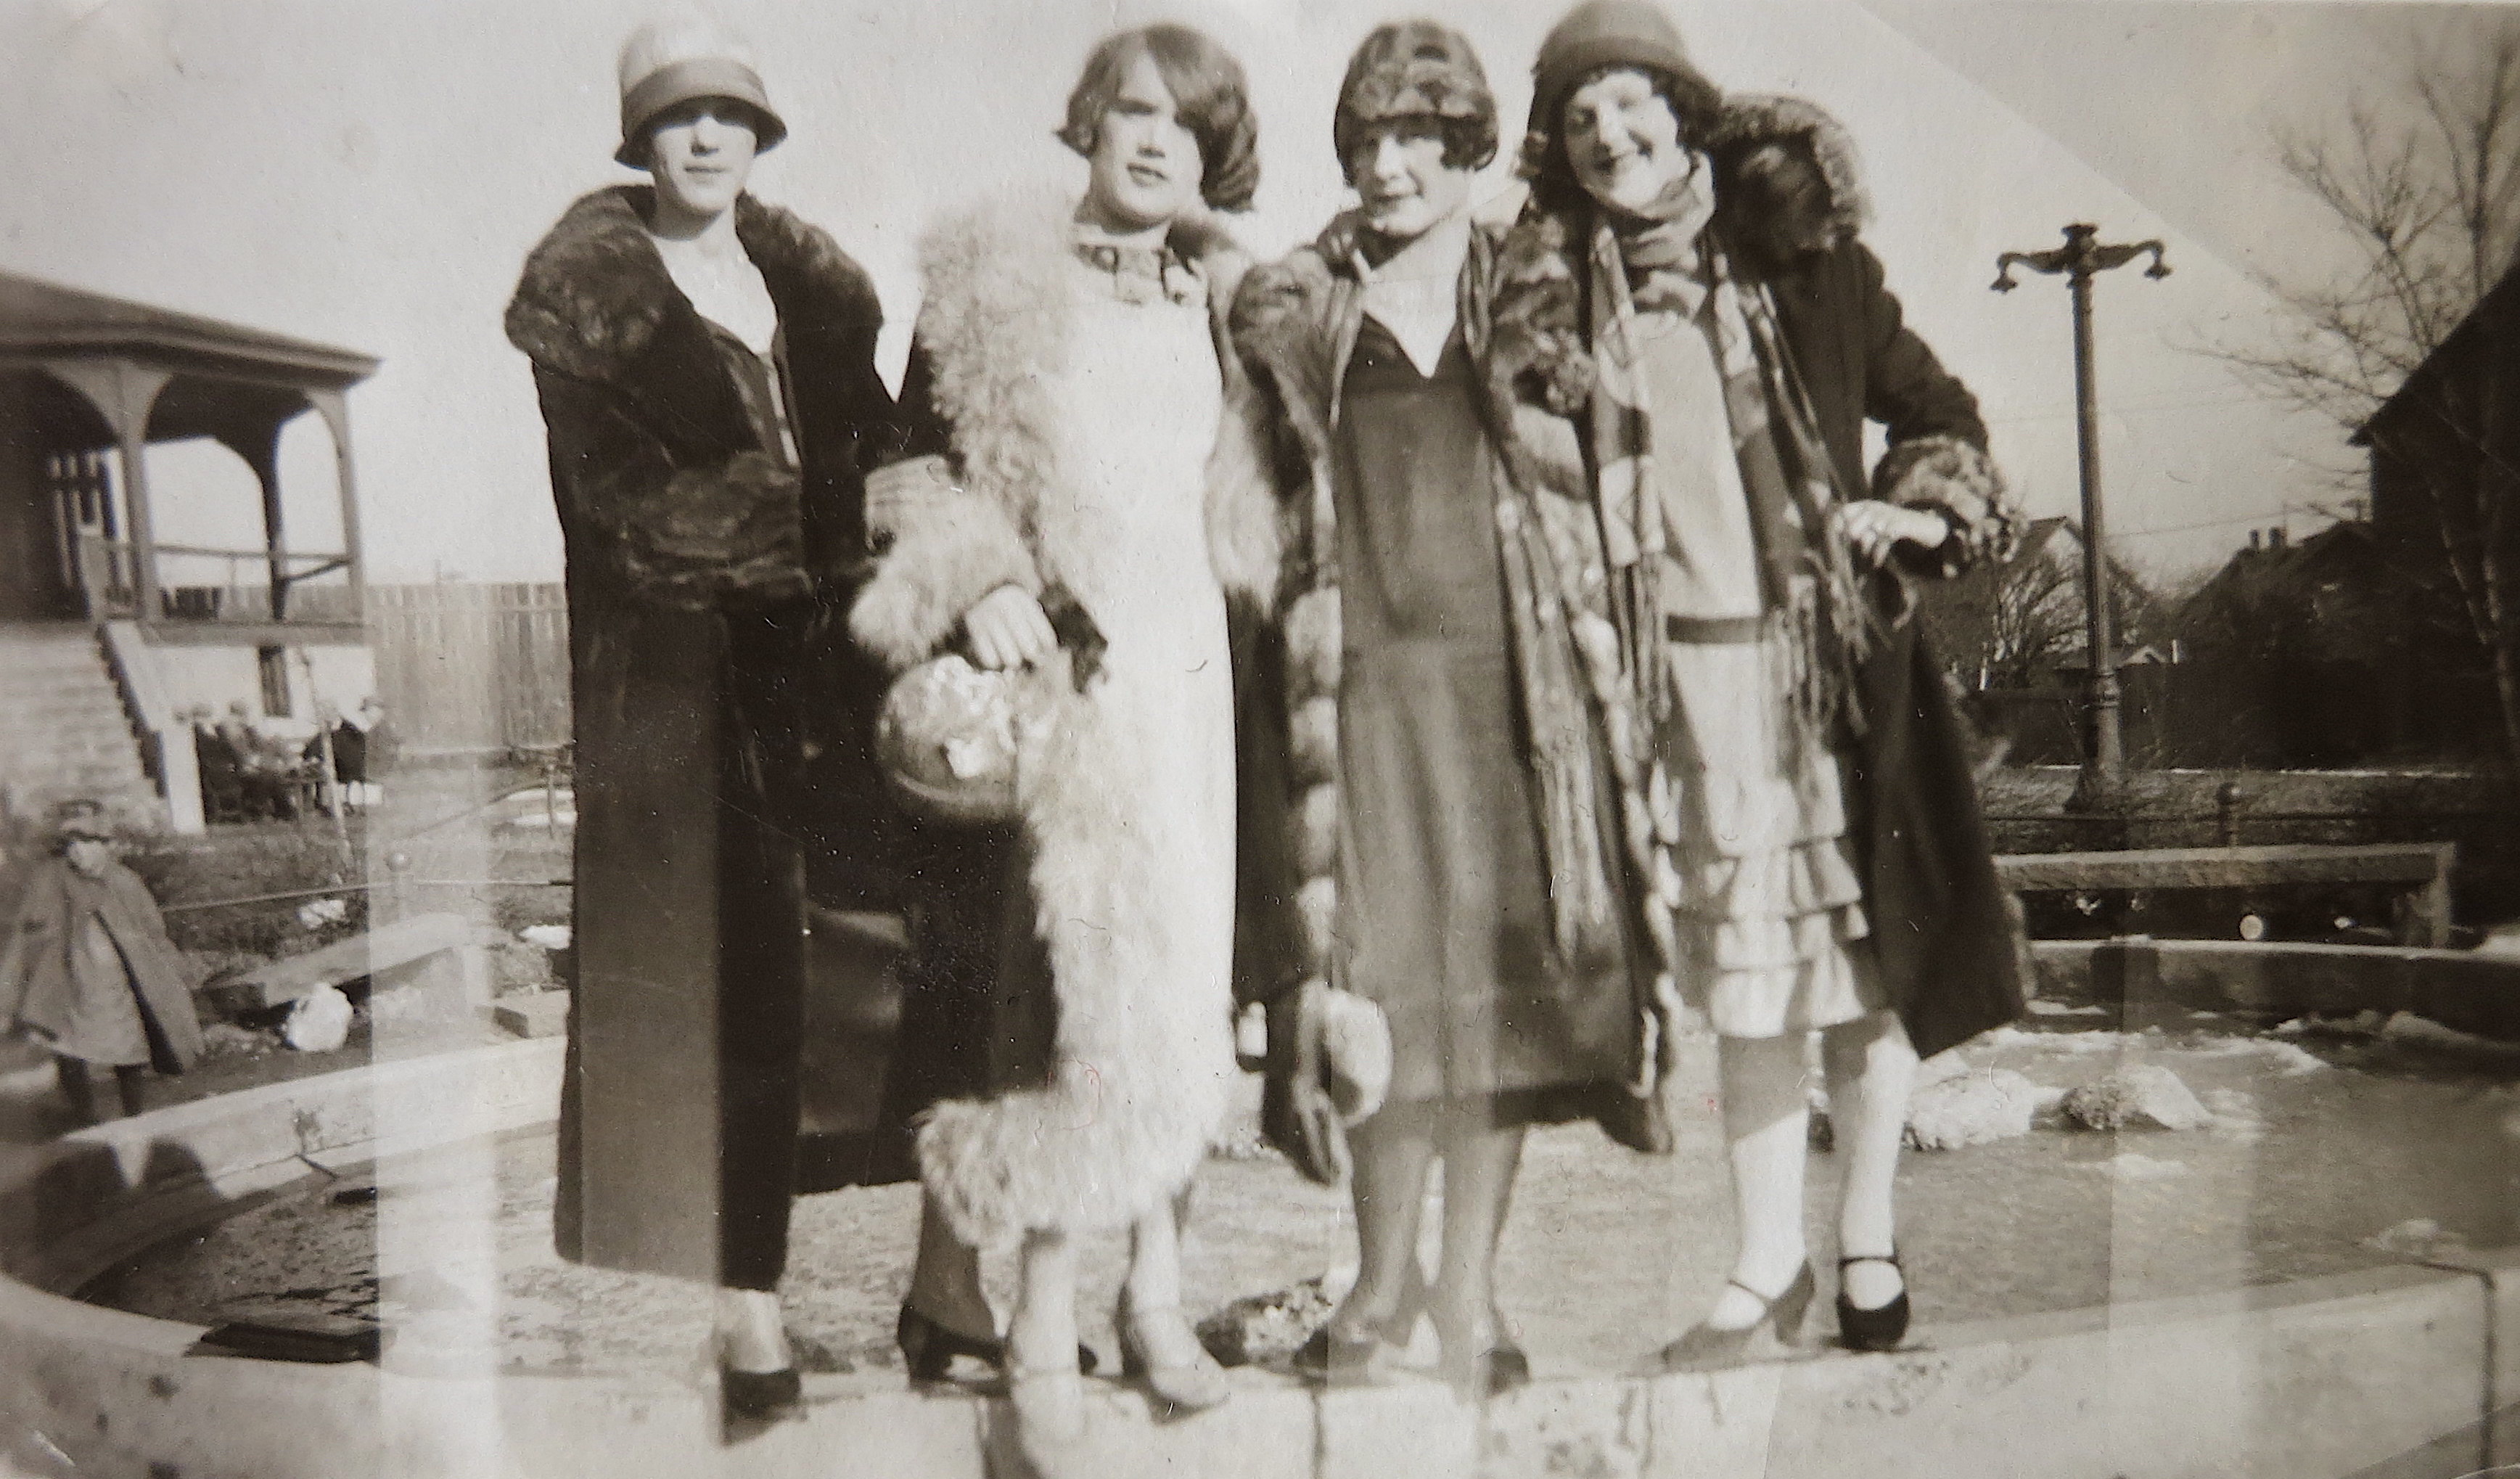 A black and white photo of a group of young women dressed as flappers in the 1920s